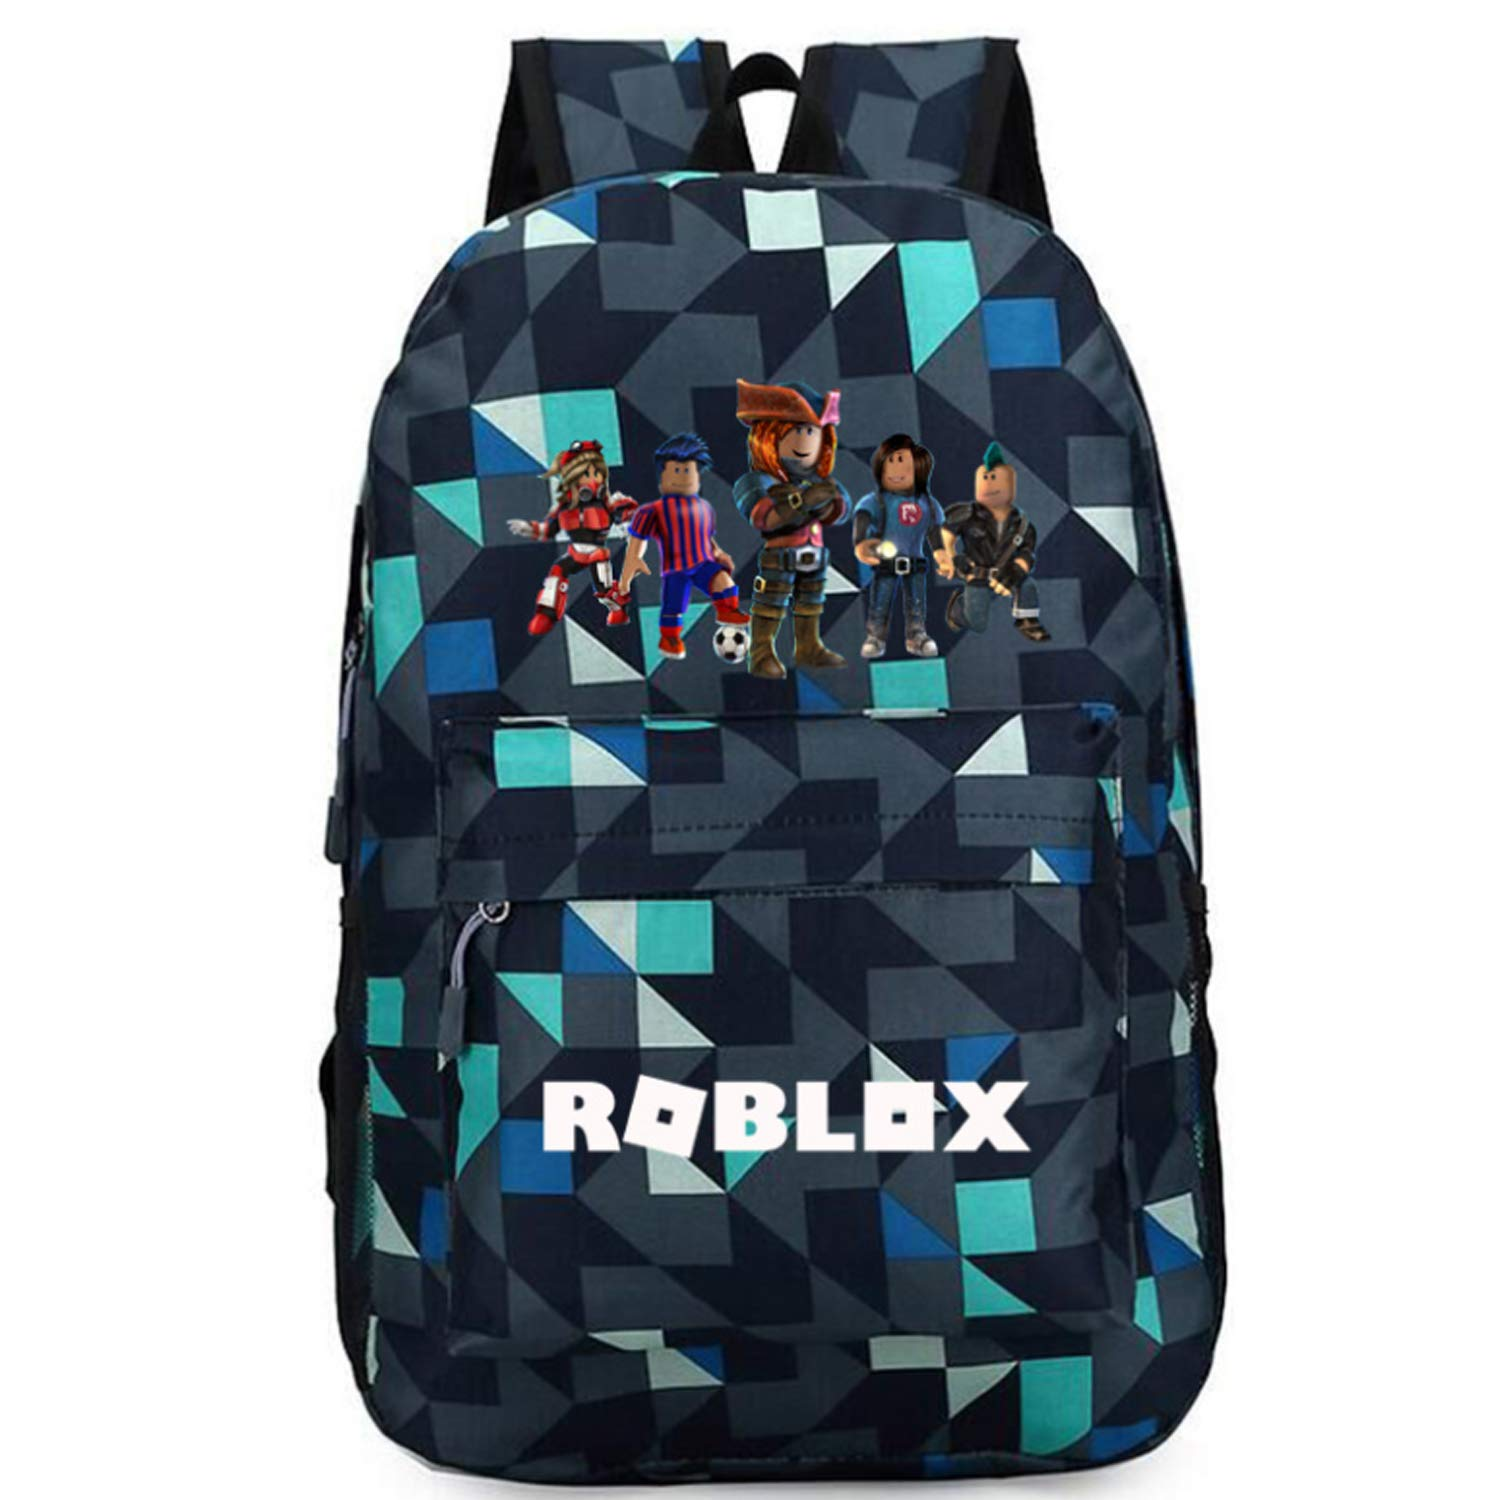 Roblox Backpack, Laptop Backpack Travel Computer Bag for boys girls kids, Water Resistant College School Bookbag (01)